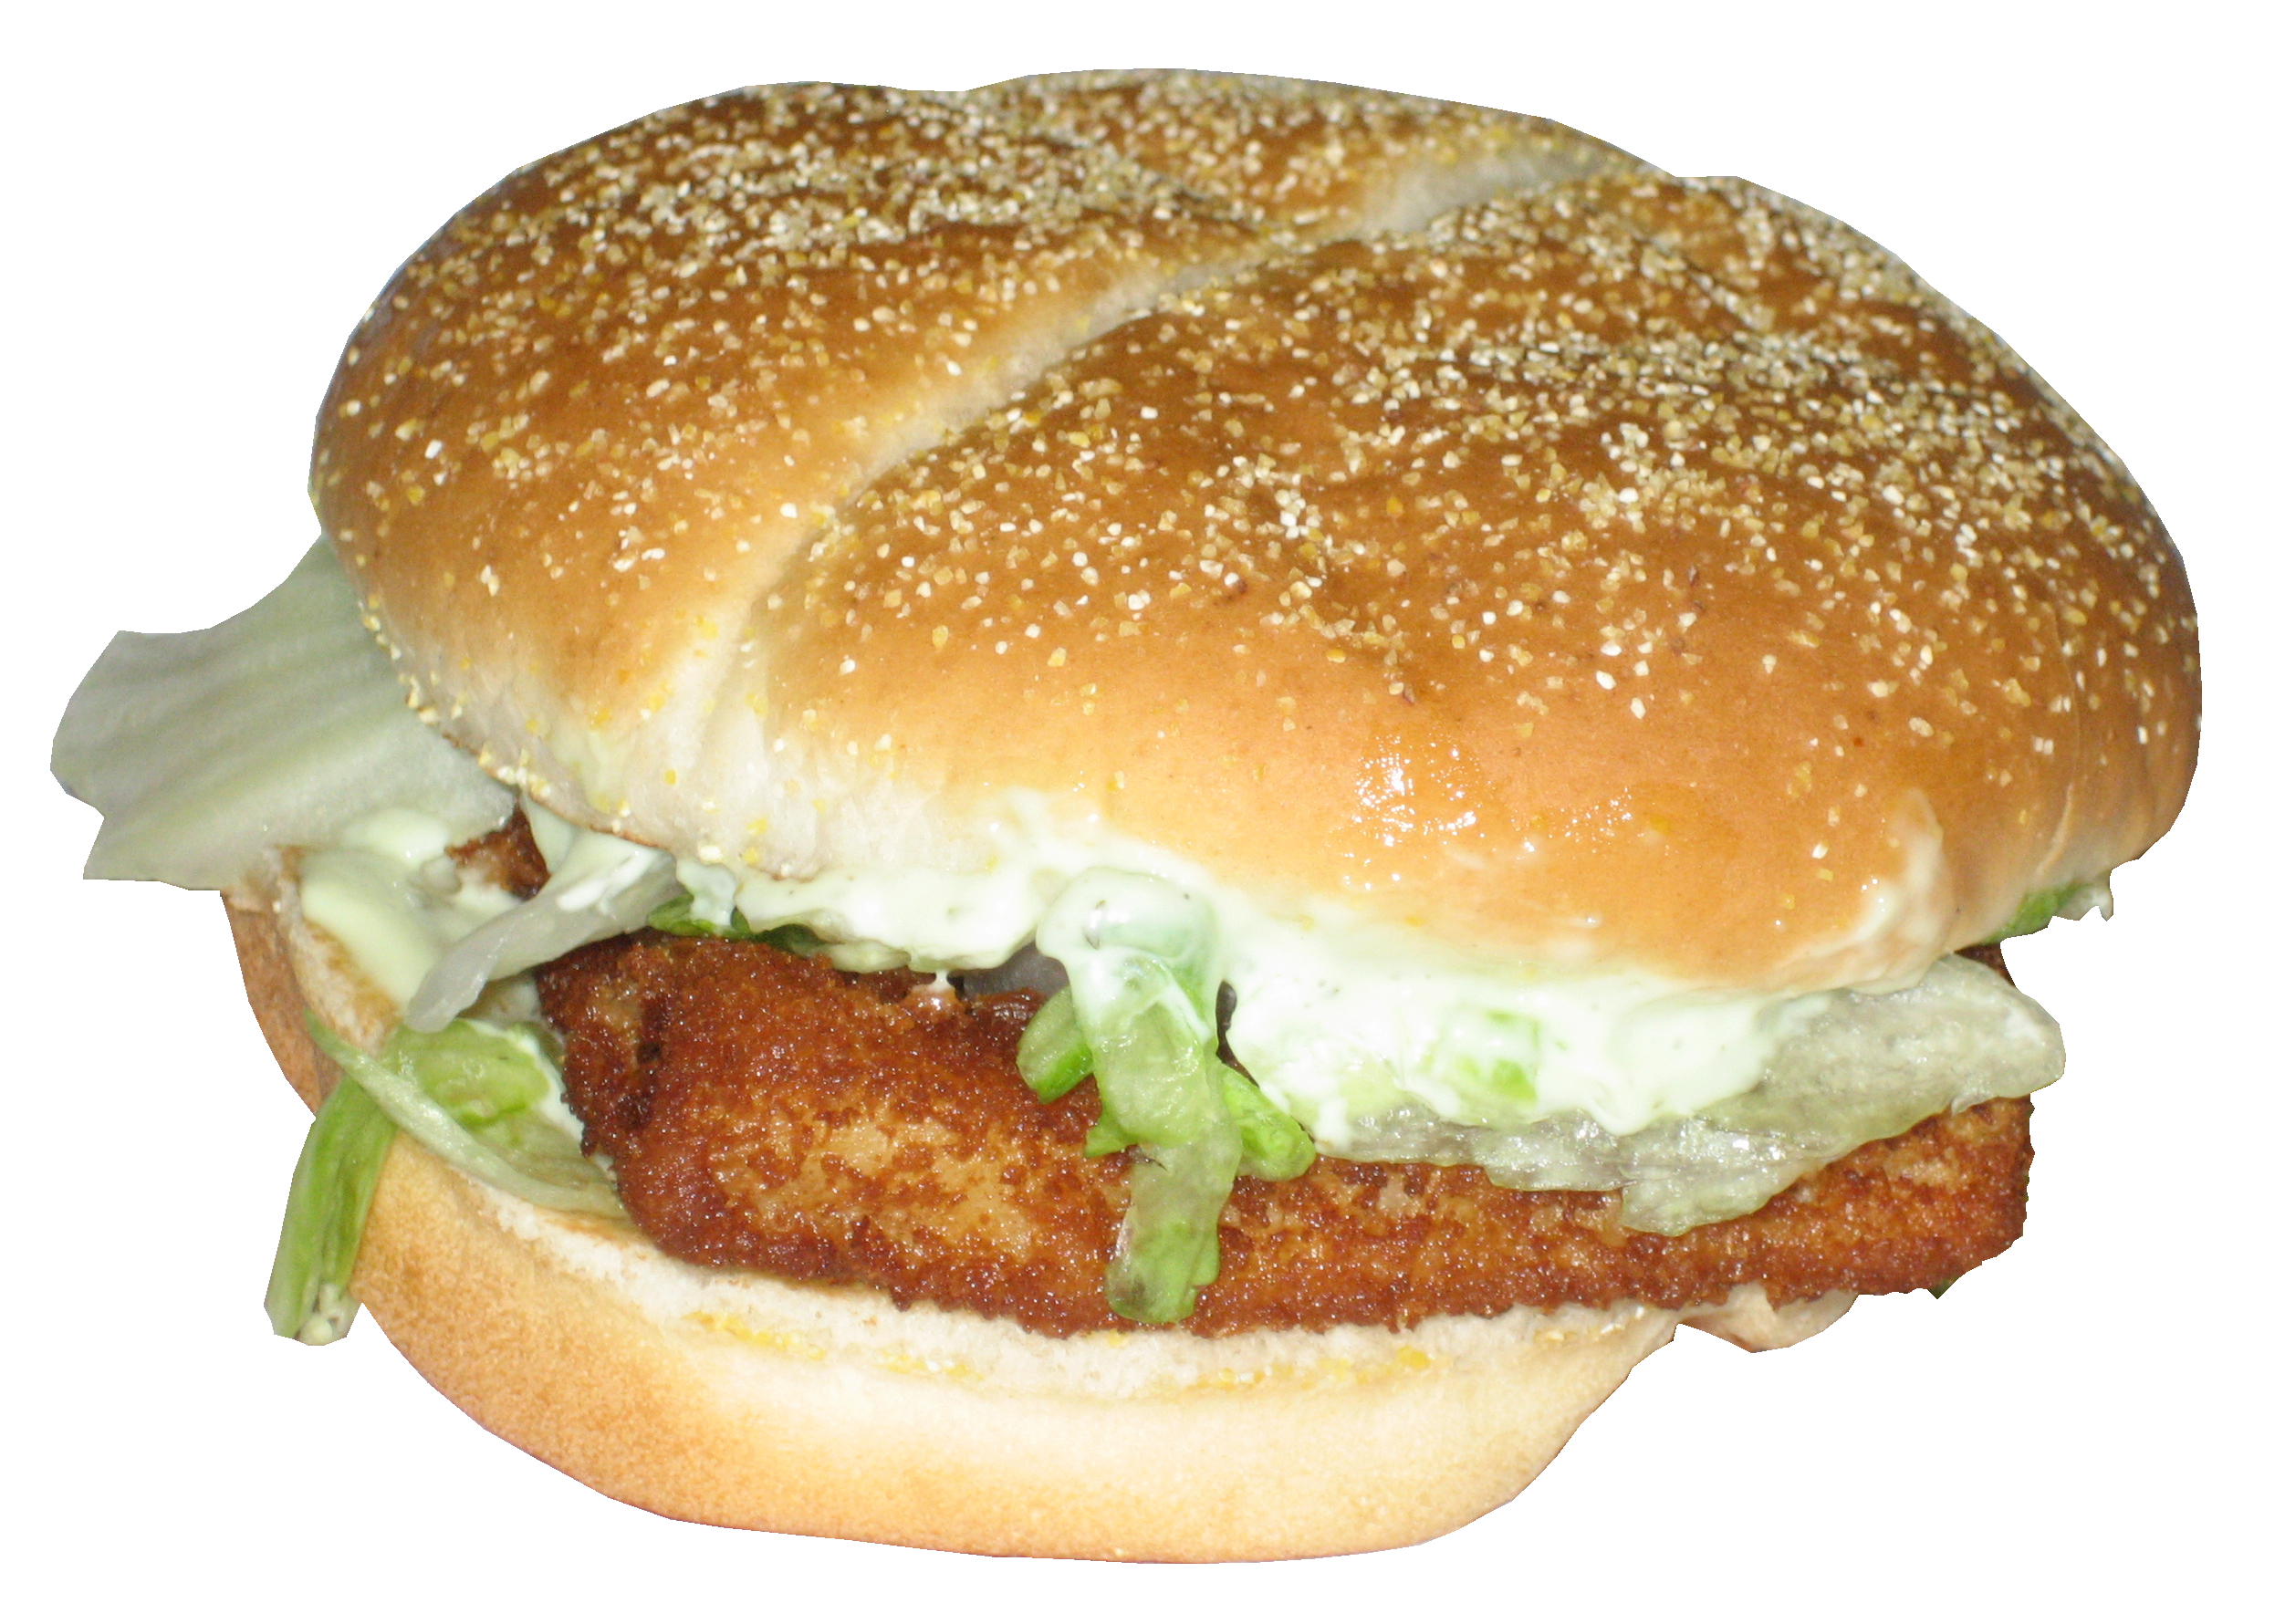 photo regarding Burger King Printable Application identify Burger King fish sandwiches - Wikipedia